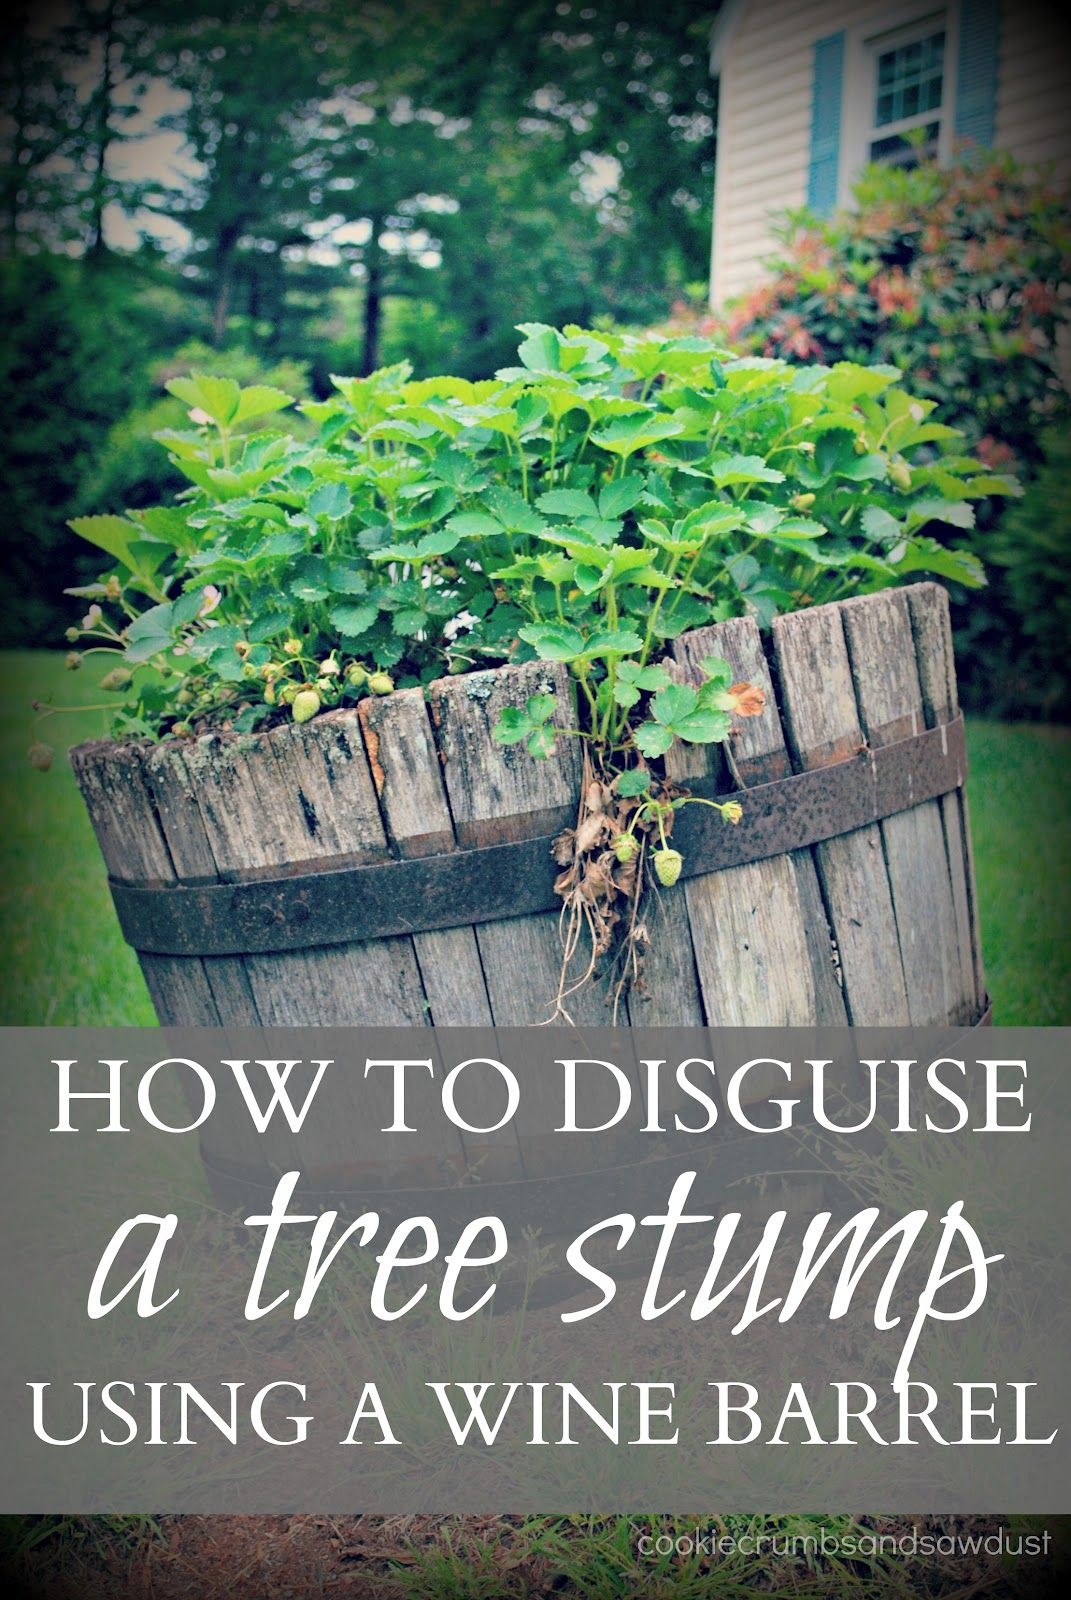 How To Disguise A Tree Stump Tree Stump Decor Tree Stump Tree